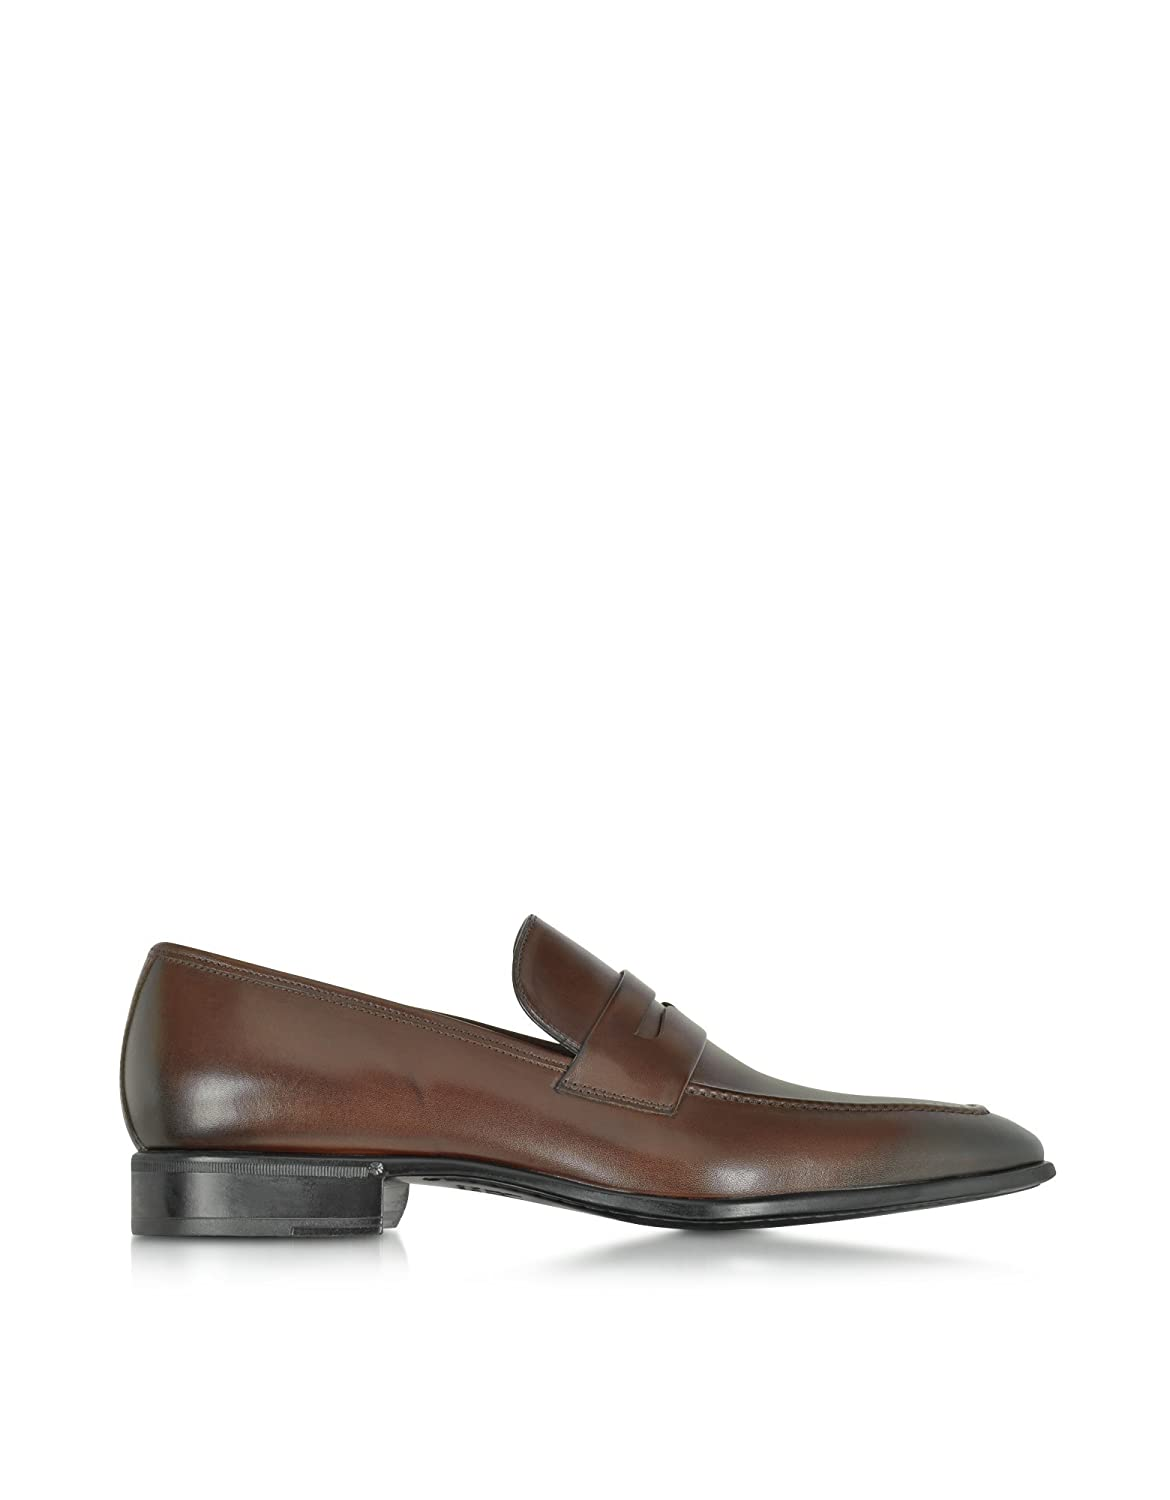 MORESCHI MEN'S 41335MQDARKBROWN BROWN LEATHER LOAFERS